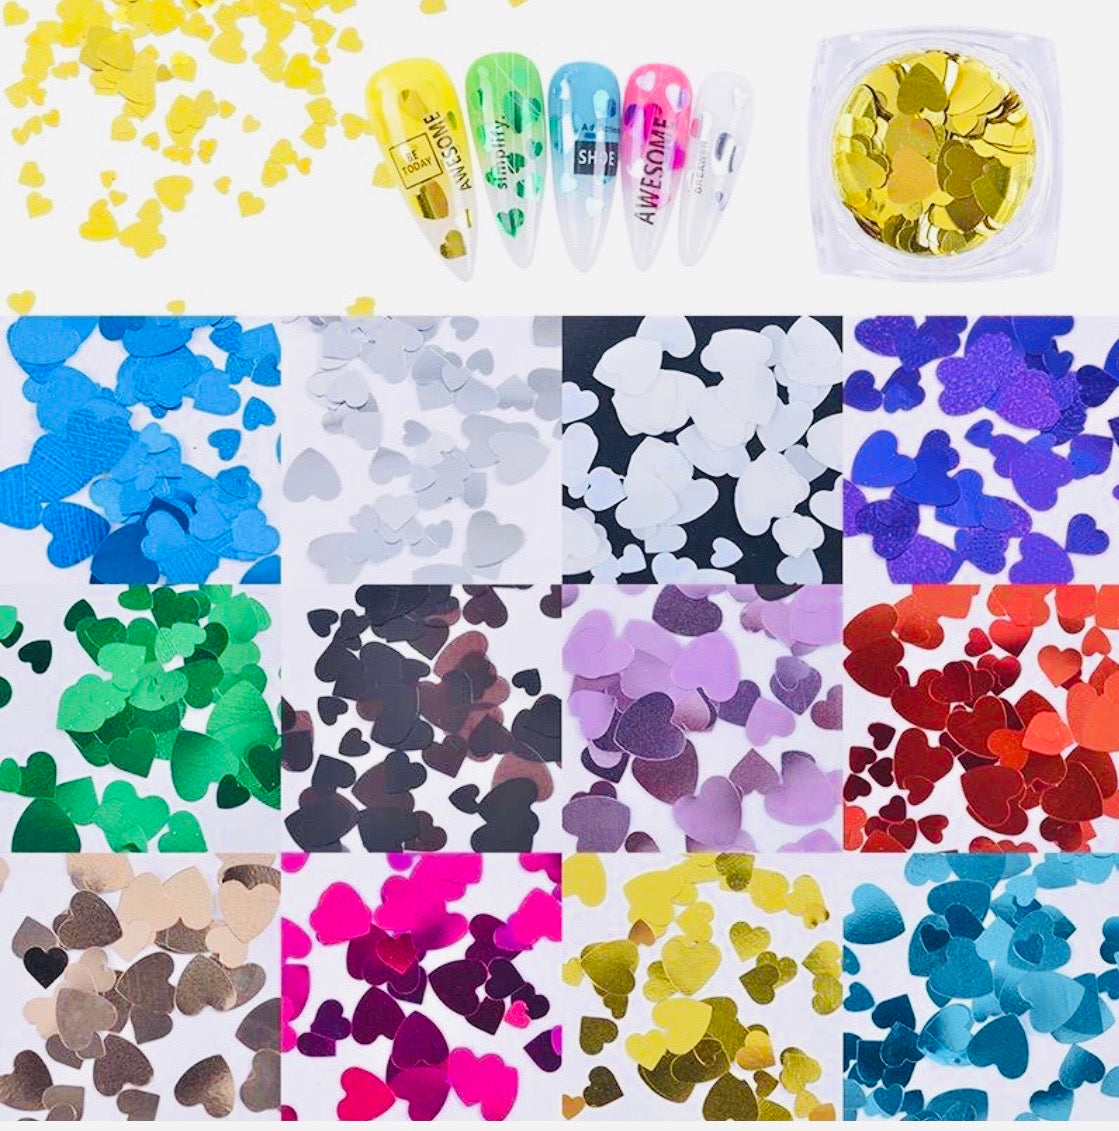 SHINE- SEQUIN GLITTER CHROME Mix Sizes Hearts - 12 Colors Set